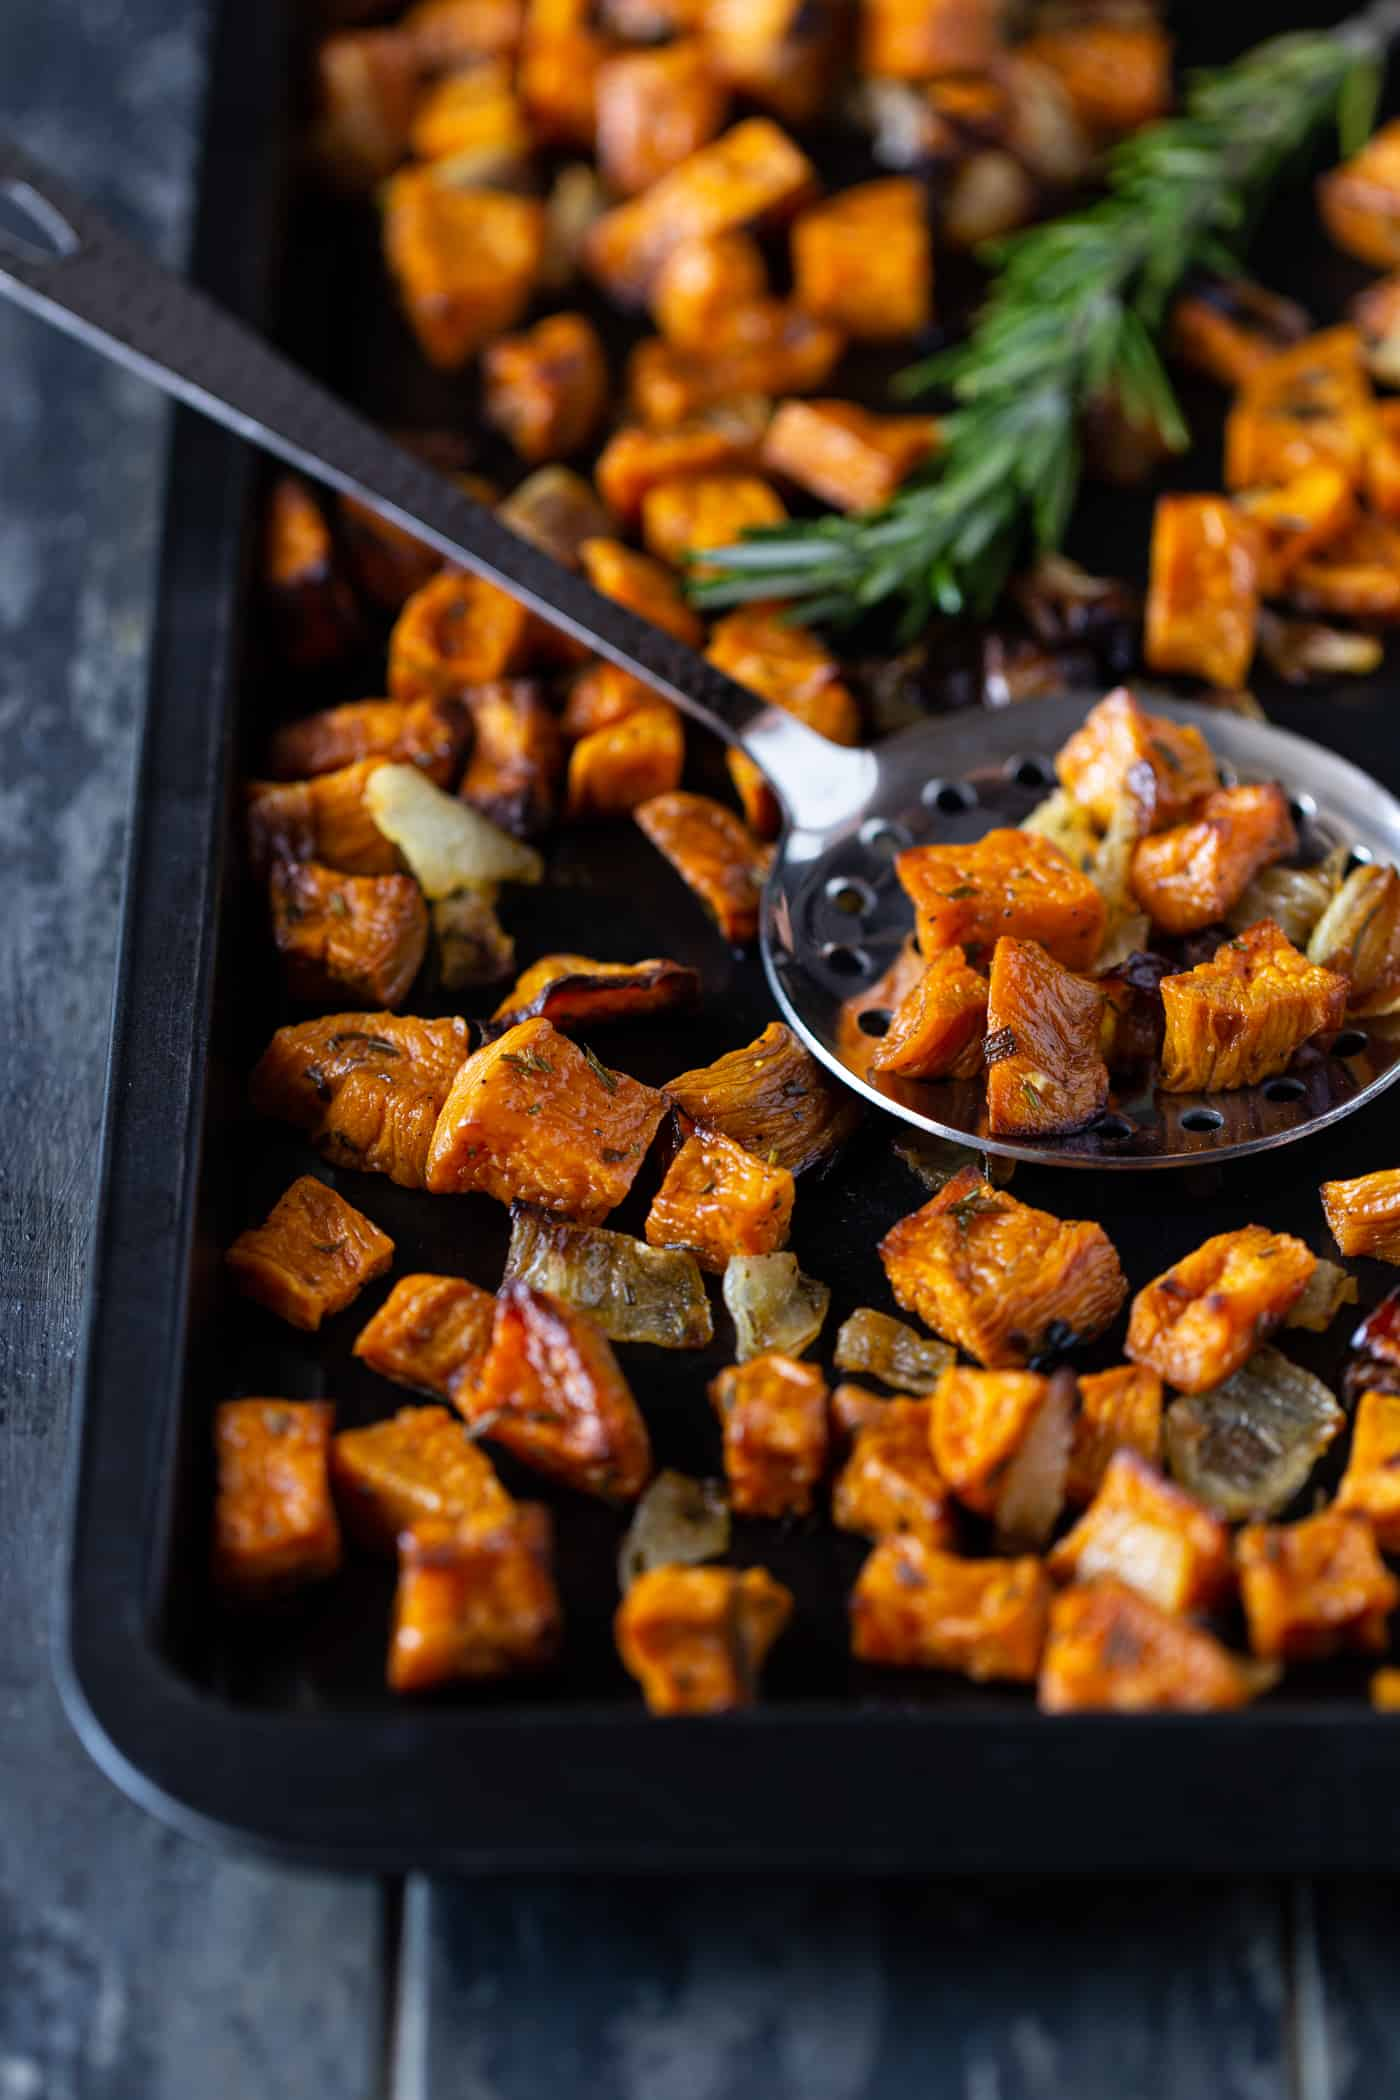 Dark sheet pan filled with rosemary roasted sweet potatoes and onions. garnished with fresh rosemary and a silver serving spoon.